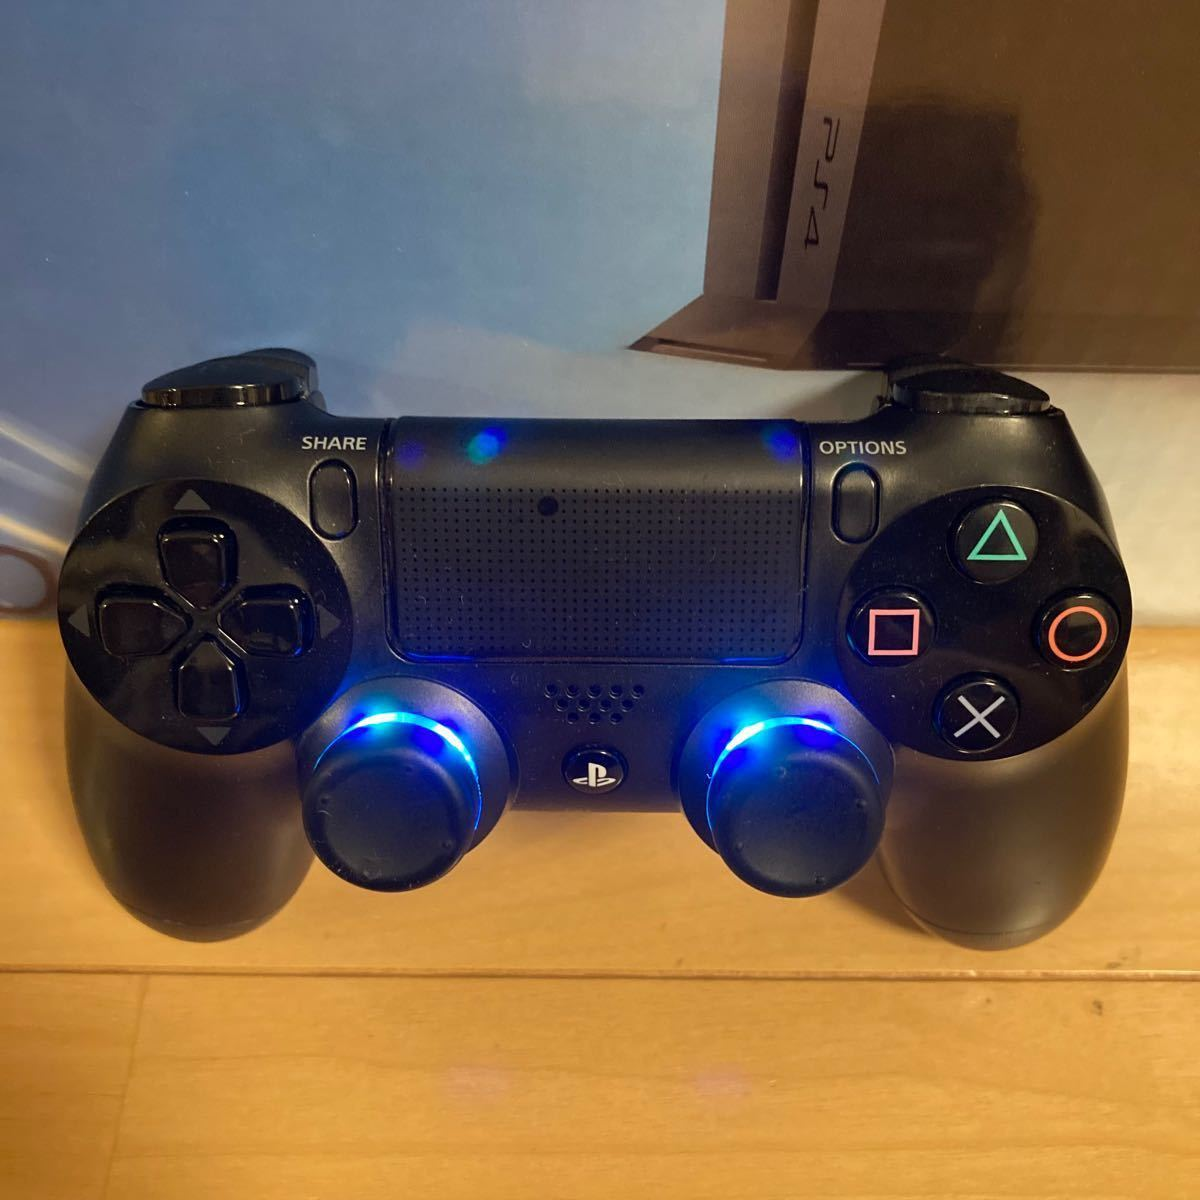 PS4 CUH-1000A 完動品 付属品セット ソフト2本付き SONY PlayStation4 ジェットブラック PS4本体